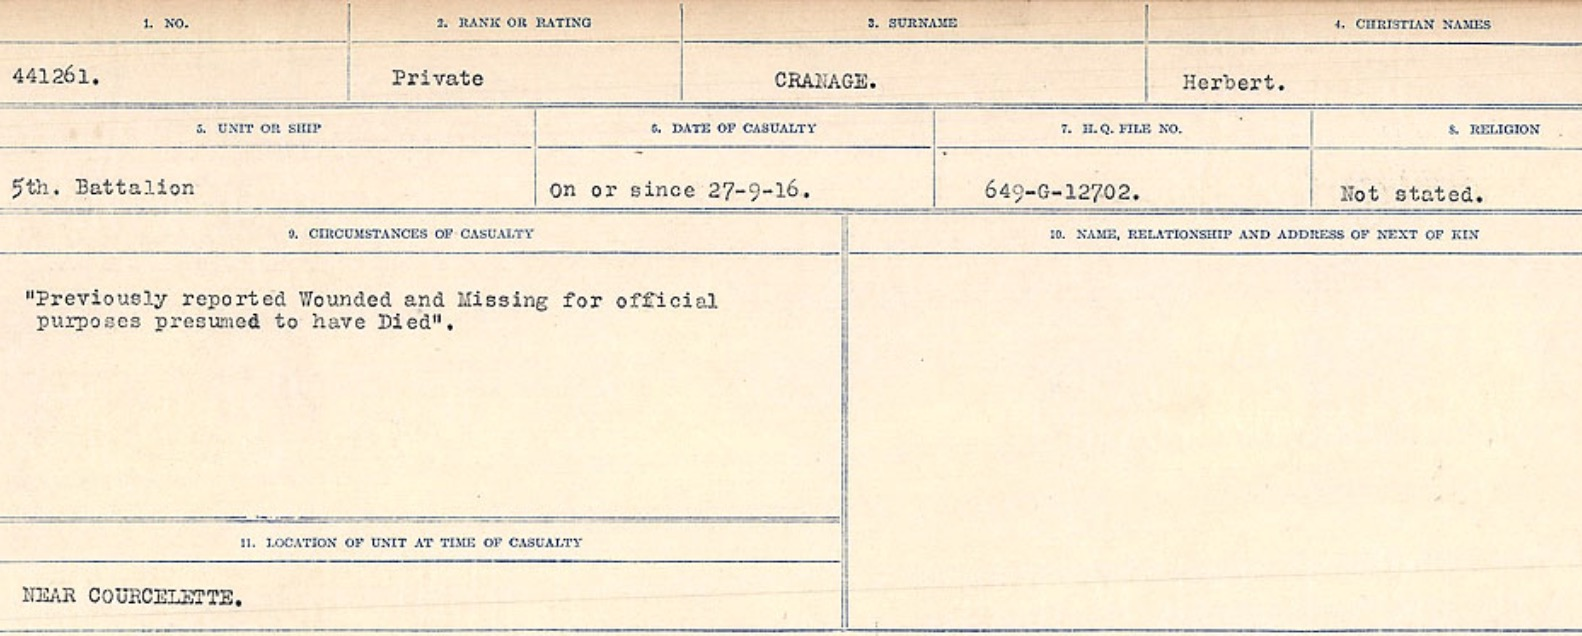 Circumstances of death registers– Source: Library and Archives Canada. CIRCUMSTANCES OF DEATH REGISTERS, FIRST WORLD WAR Surnames: CRABB TO CROSSLAND Microform Sequence 24; Volume Number 31829_B016733. Reference RG150, 1992-93/314, 168. Page 201 of 788.